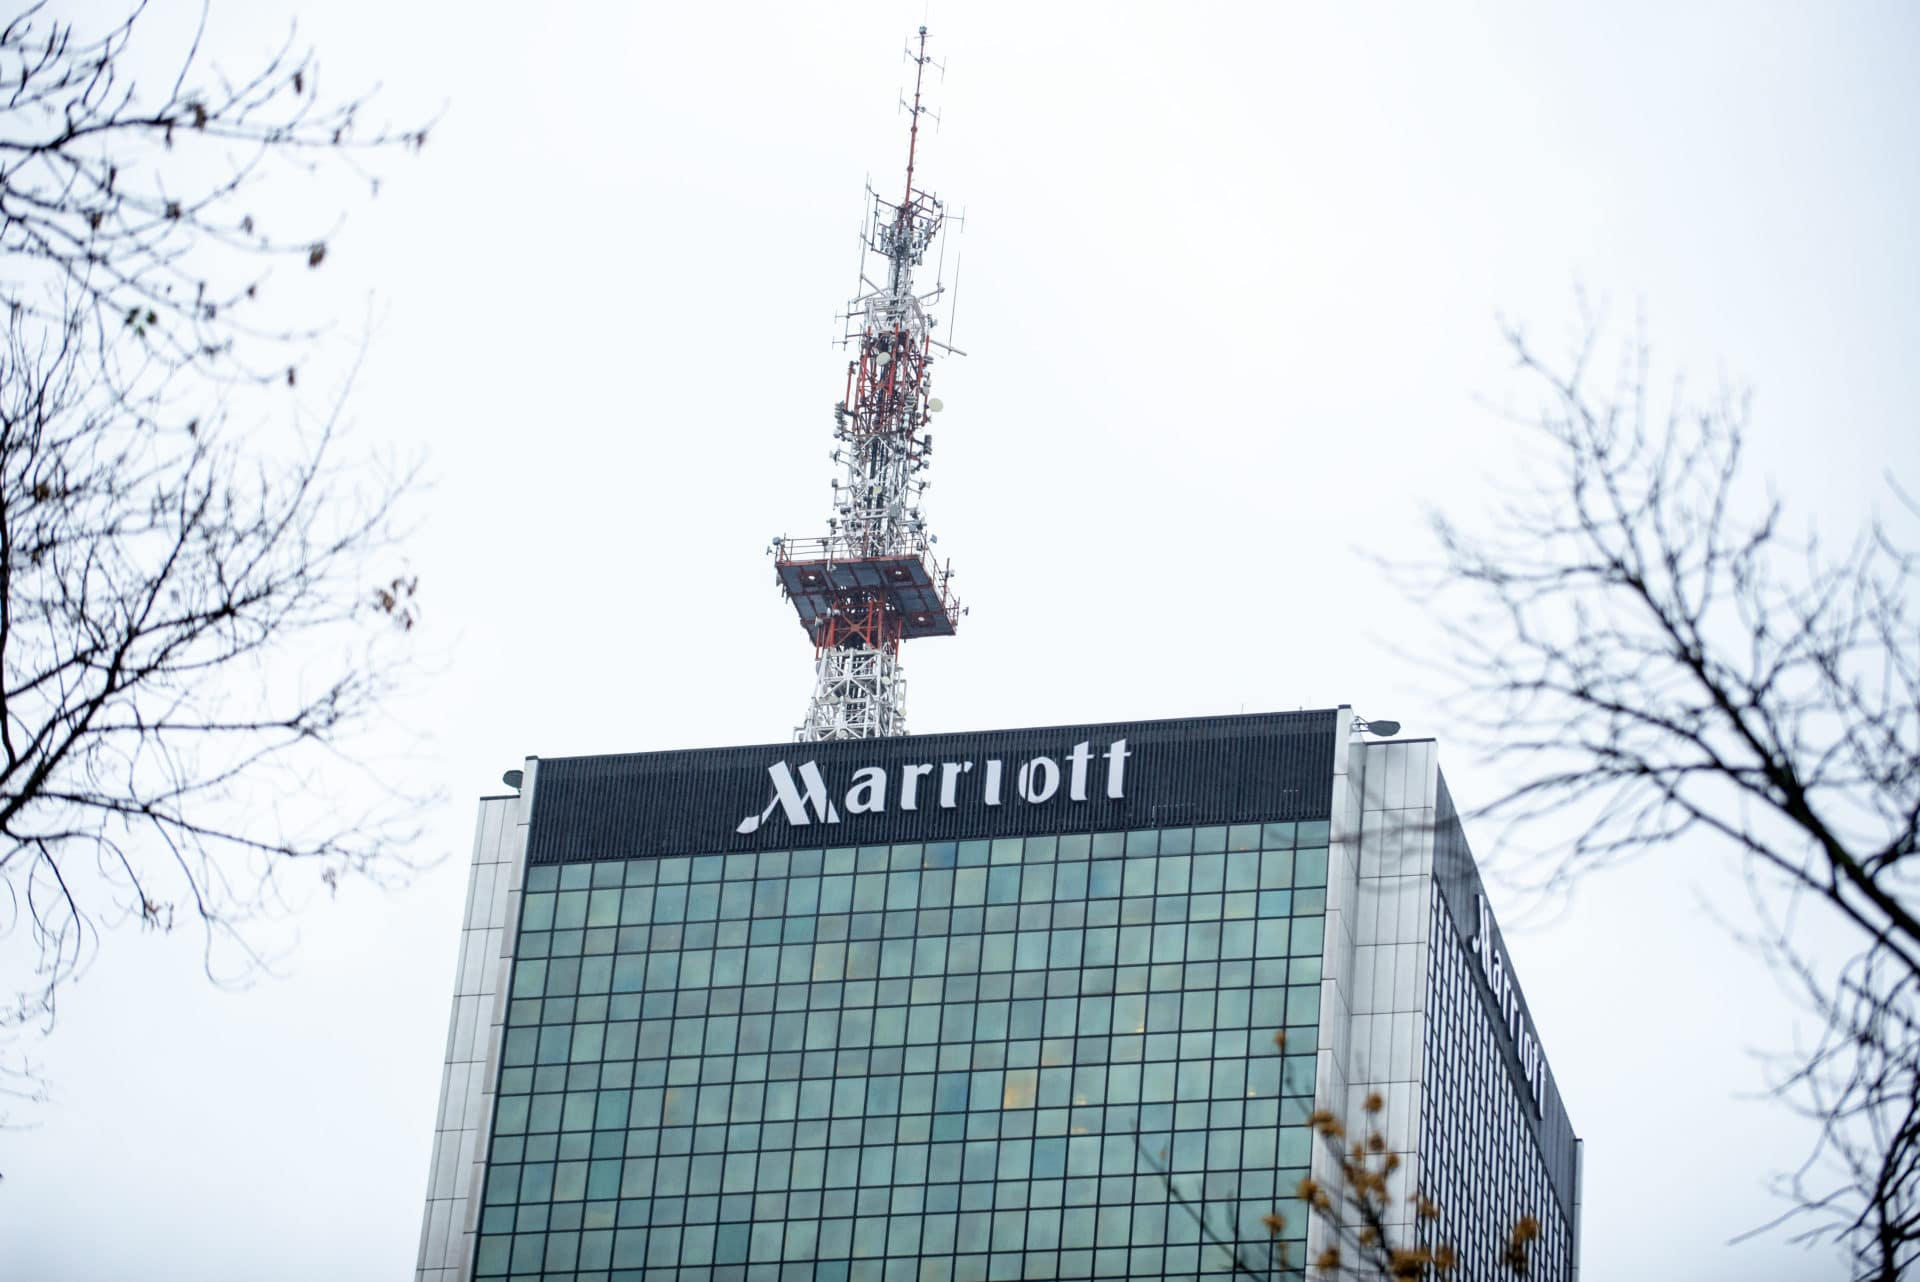 Nearly 2 500 Workers Walked Off Their Jobs Last Month From Seven Marriott Hotels In Downtown San Francisco To Call For Higher Wages Workplace Safety And